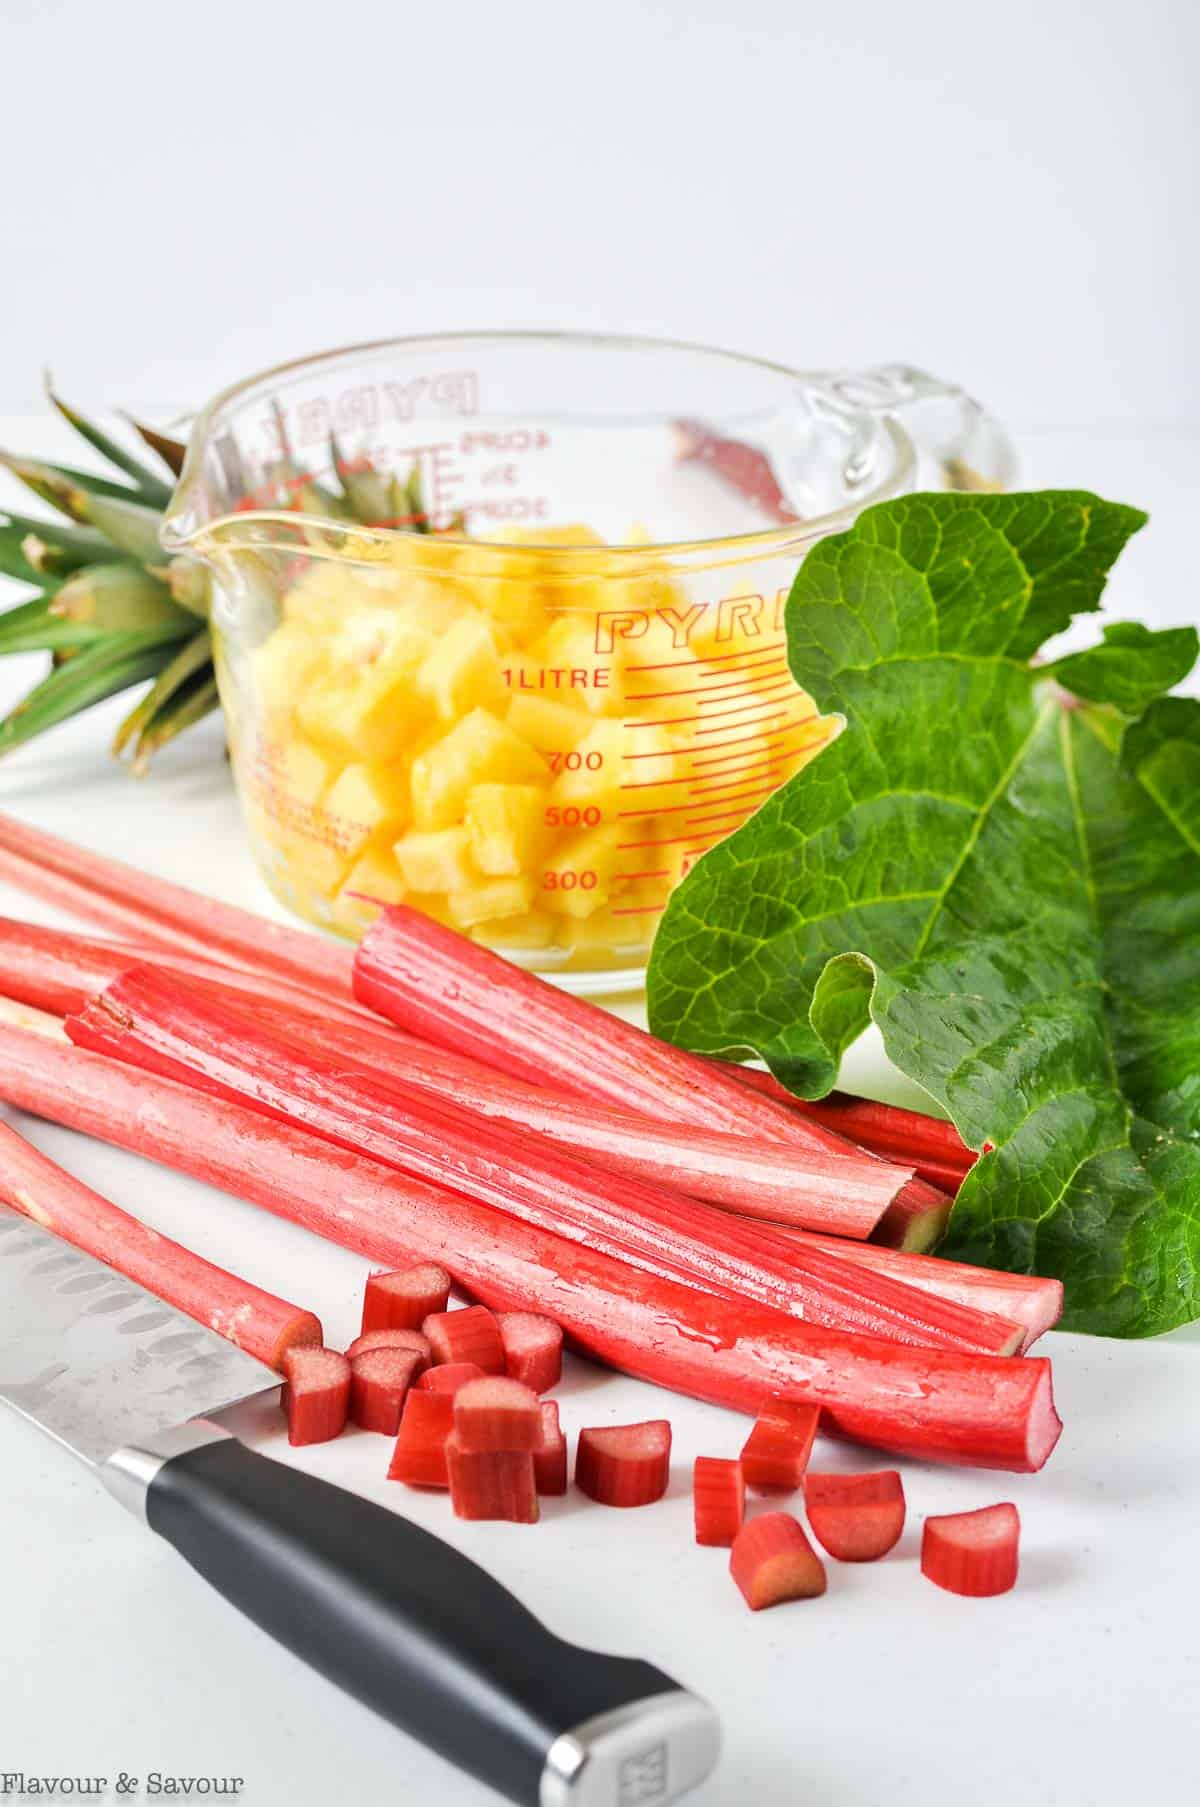 Ingredients for Pineapple Rhubarb Crisp with Ginger